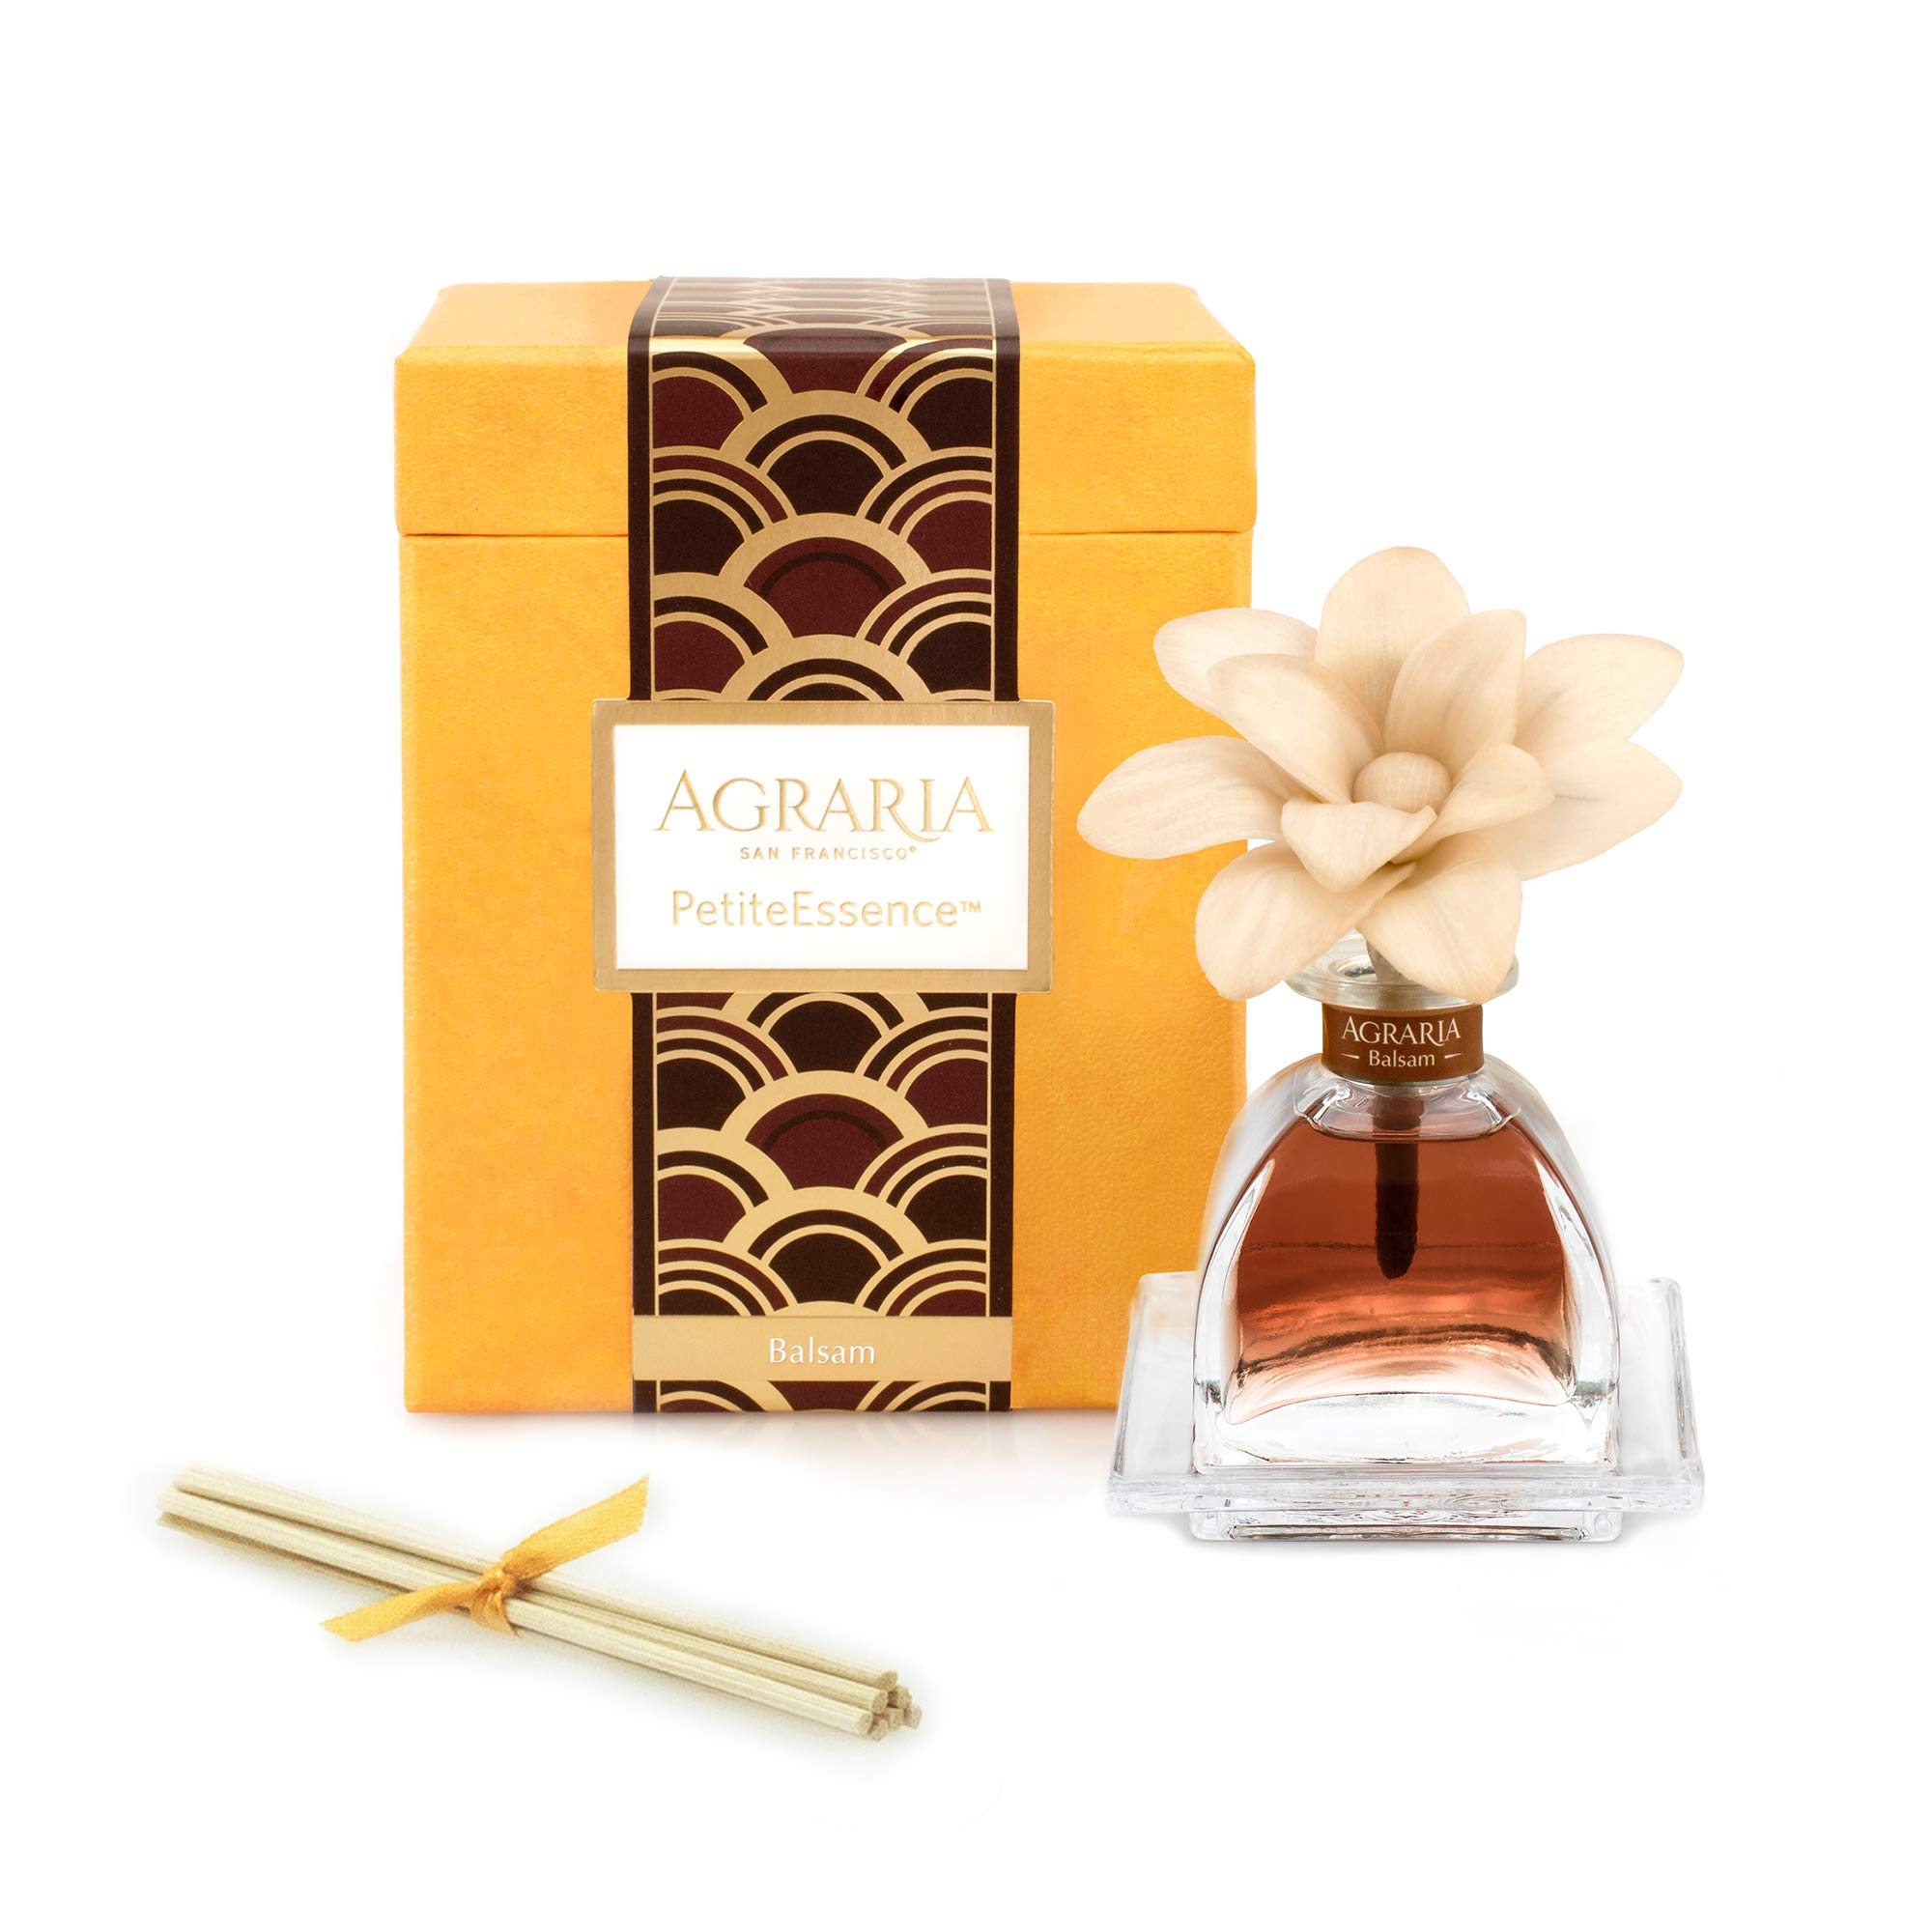 AGRARIA Balsam Scented PetiteEssence Diffuser, 1.7 Ounces with Reeds and a Flower by AGRARIA